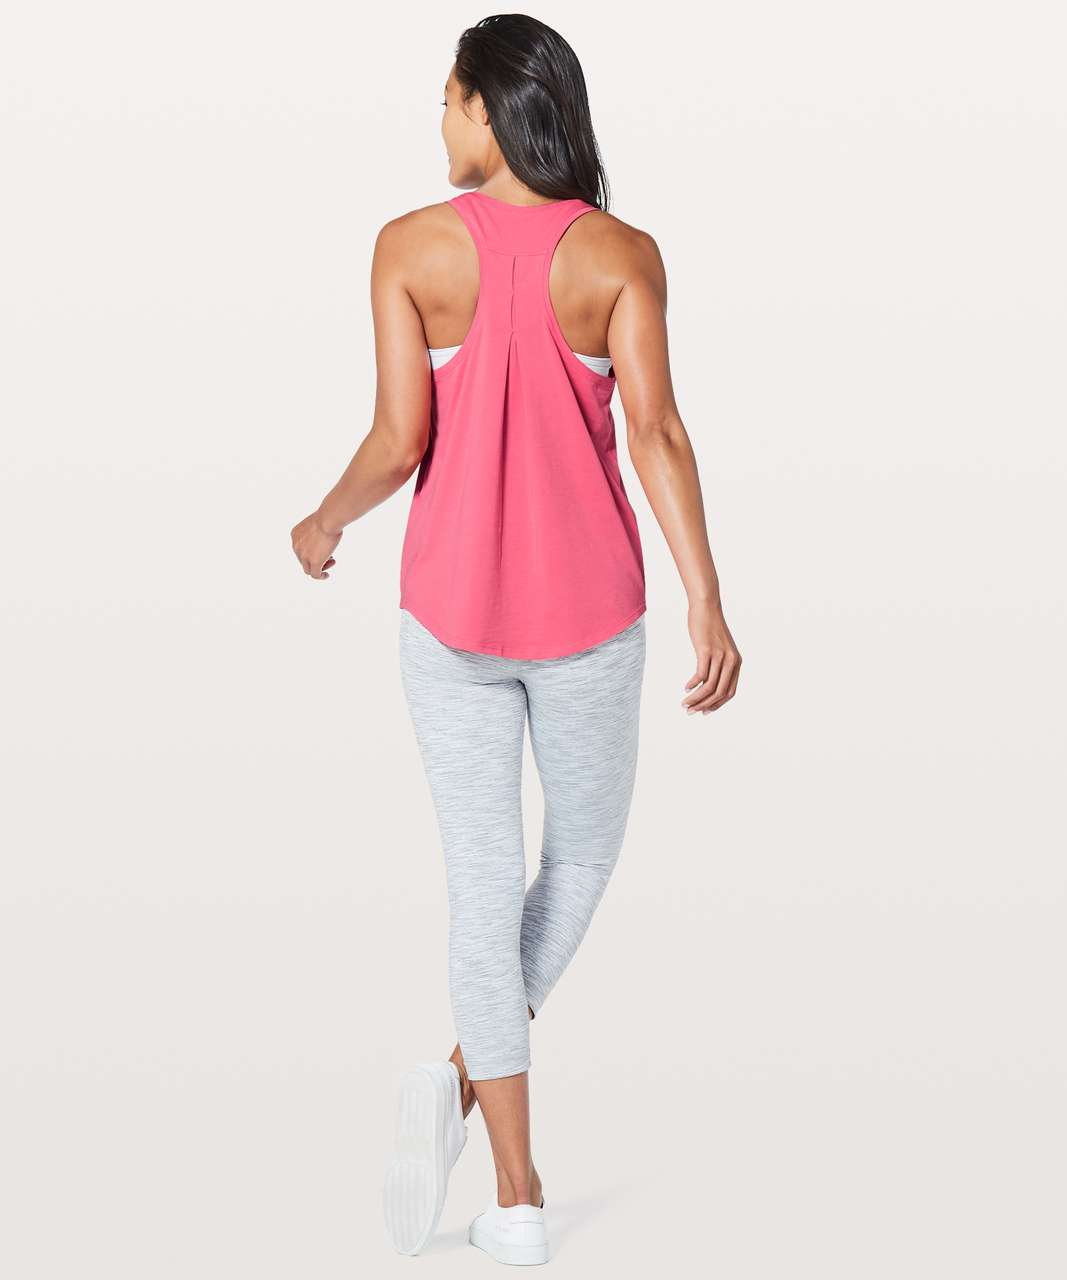 Lululemon Love Tank *Pleated - Glossy